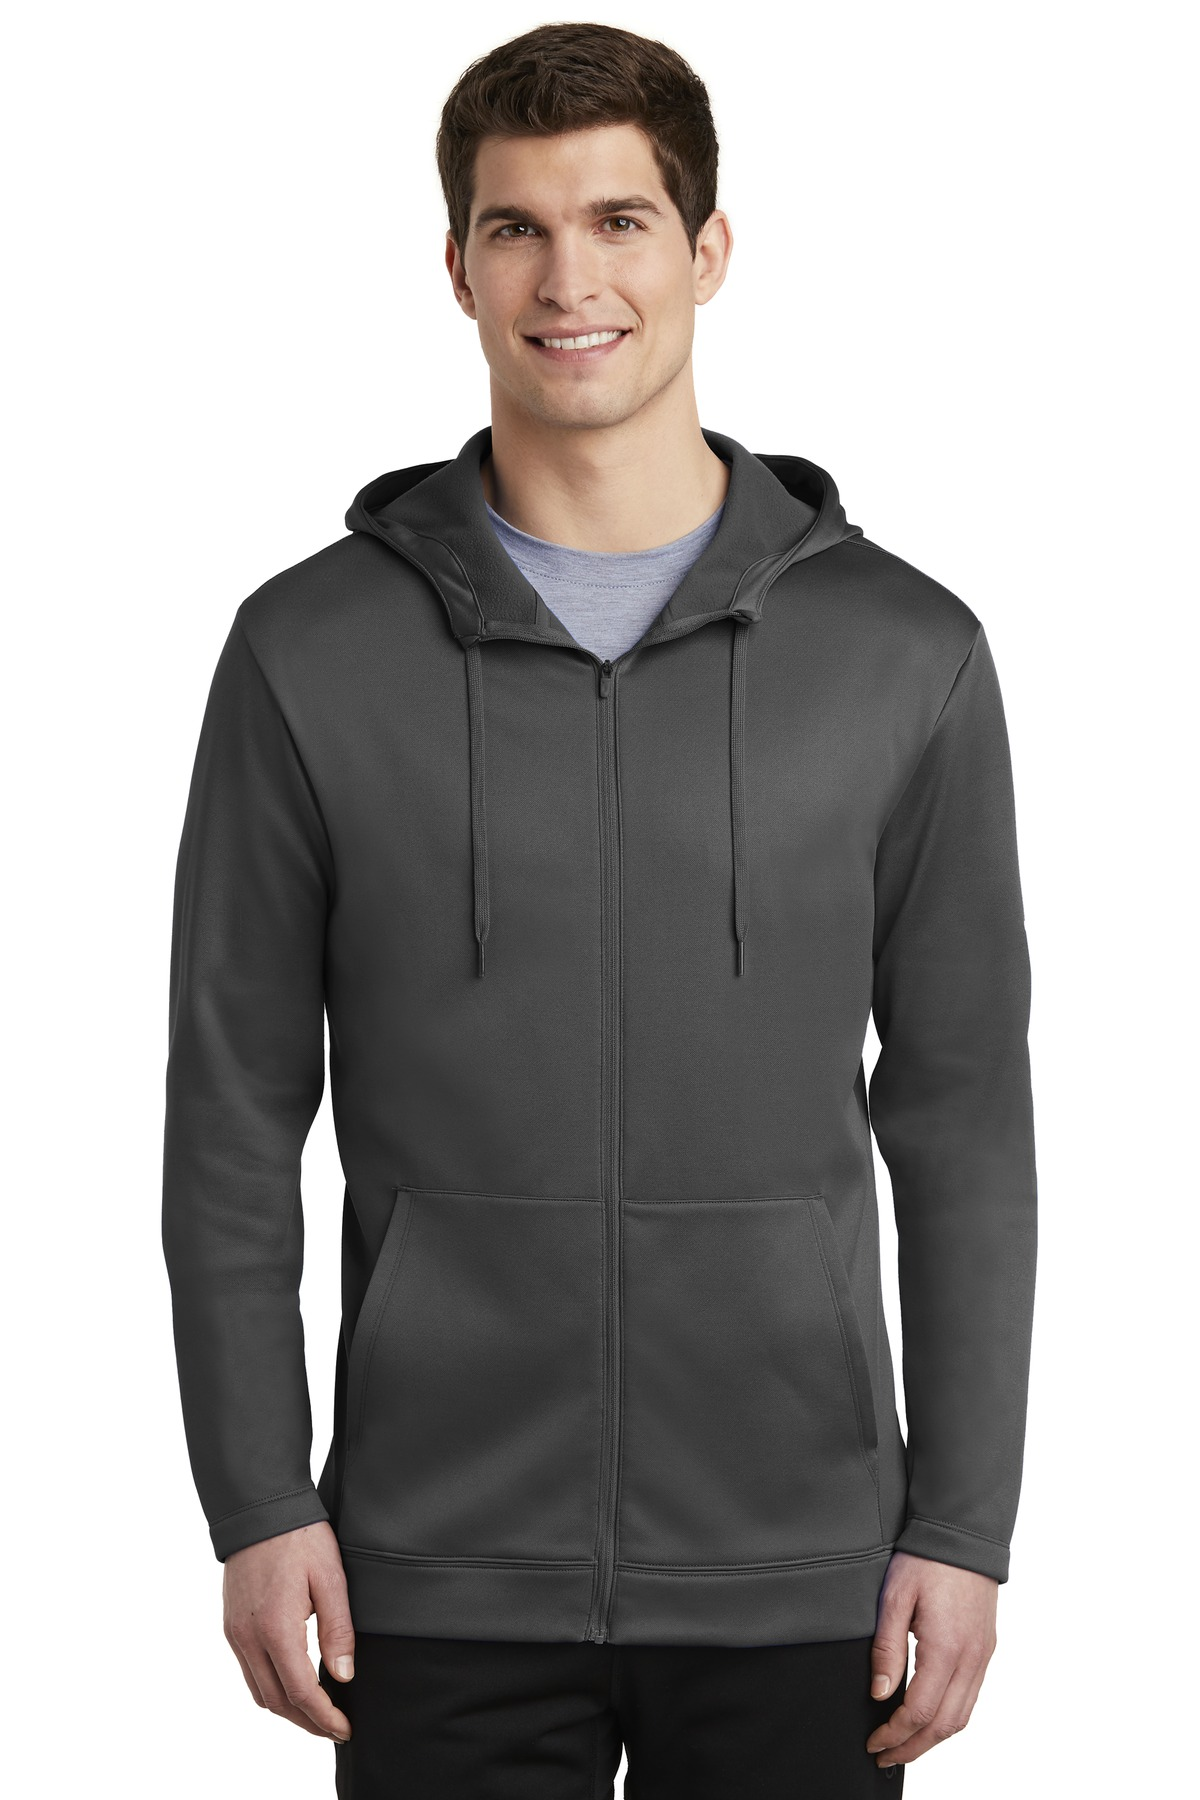 ce969a433b5 Nike Therma-FIT Full-Zip Fleece Hoodie. NKAH6259 - Custom Shirt Shop